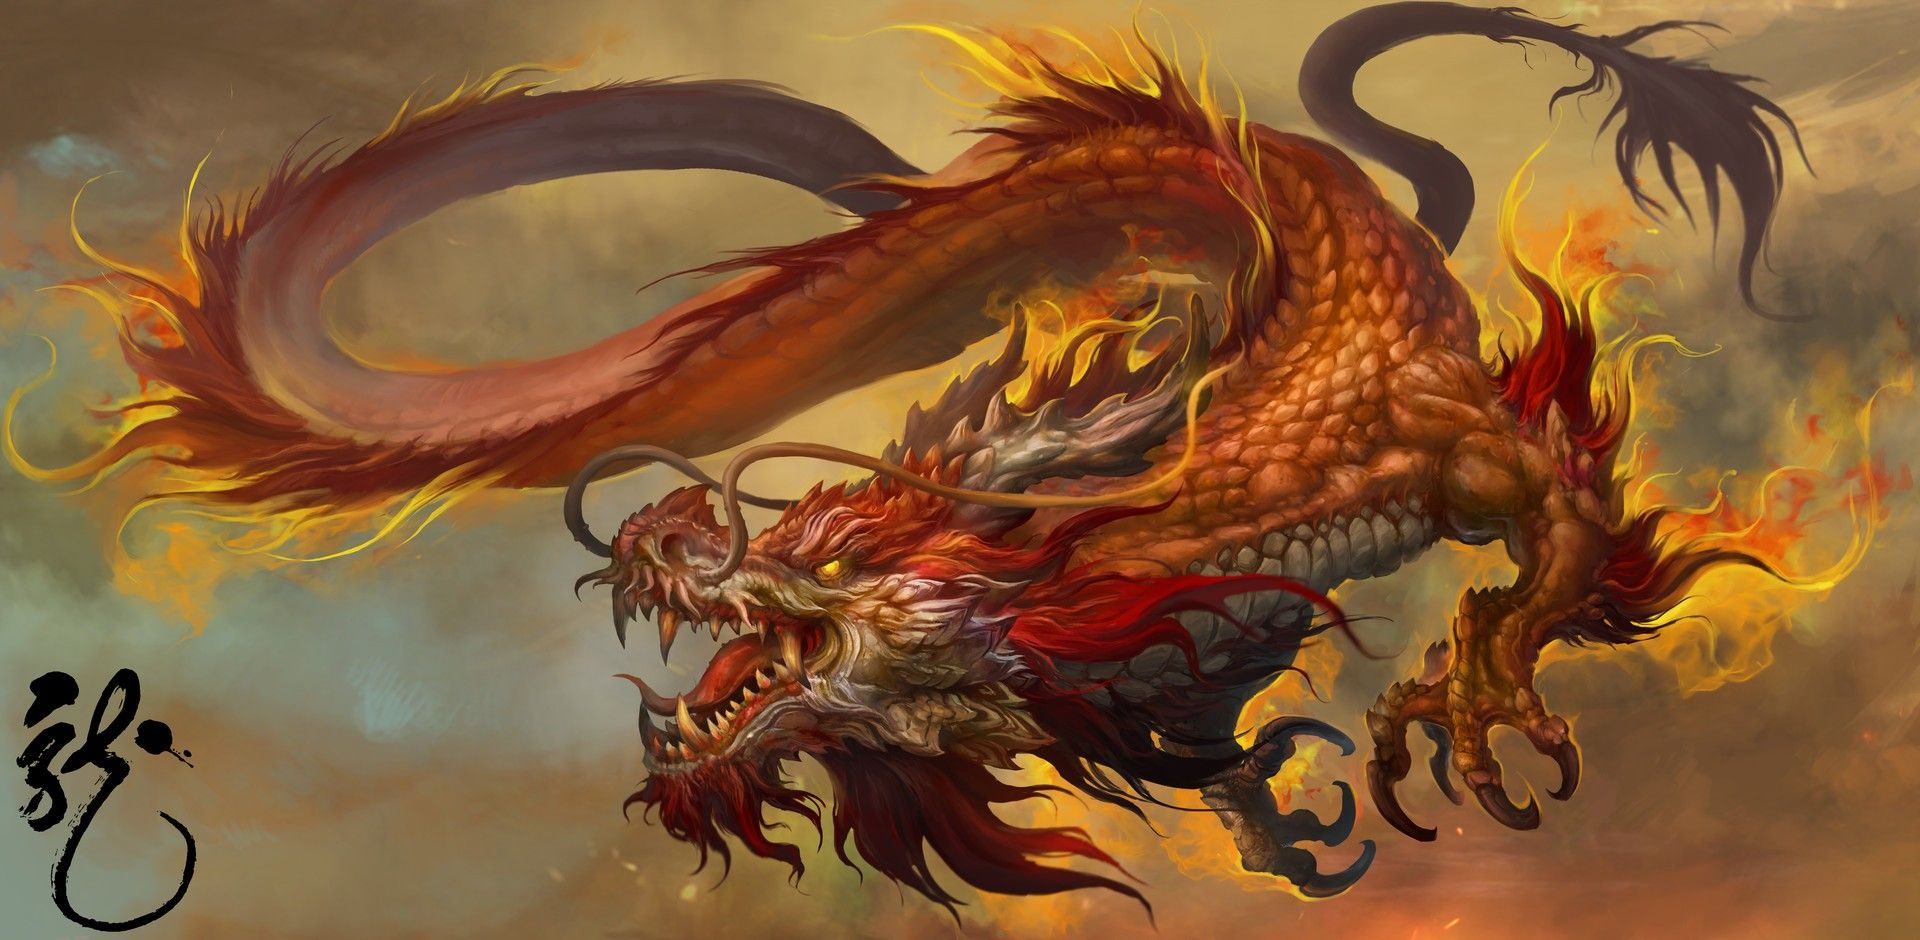 chinese and greek mythology Chinese mythology visit the links to learn about chinese myths related to objects in the sky, the earth, and aspects of their world back to the world map.